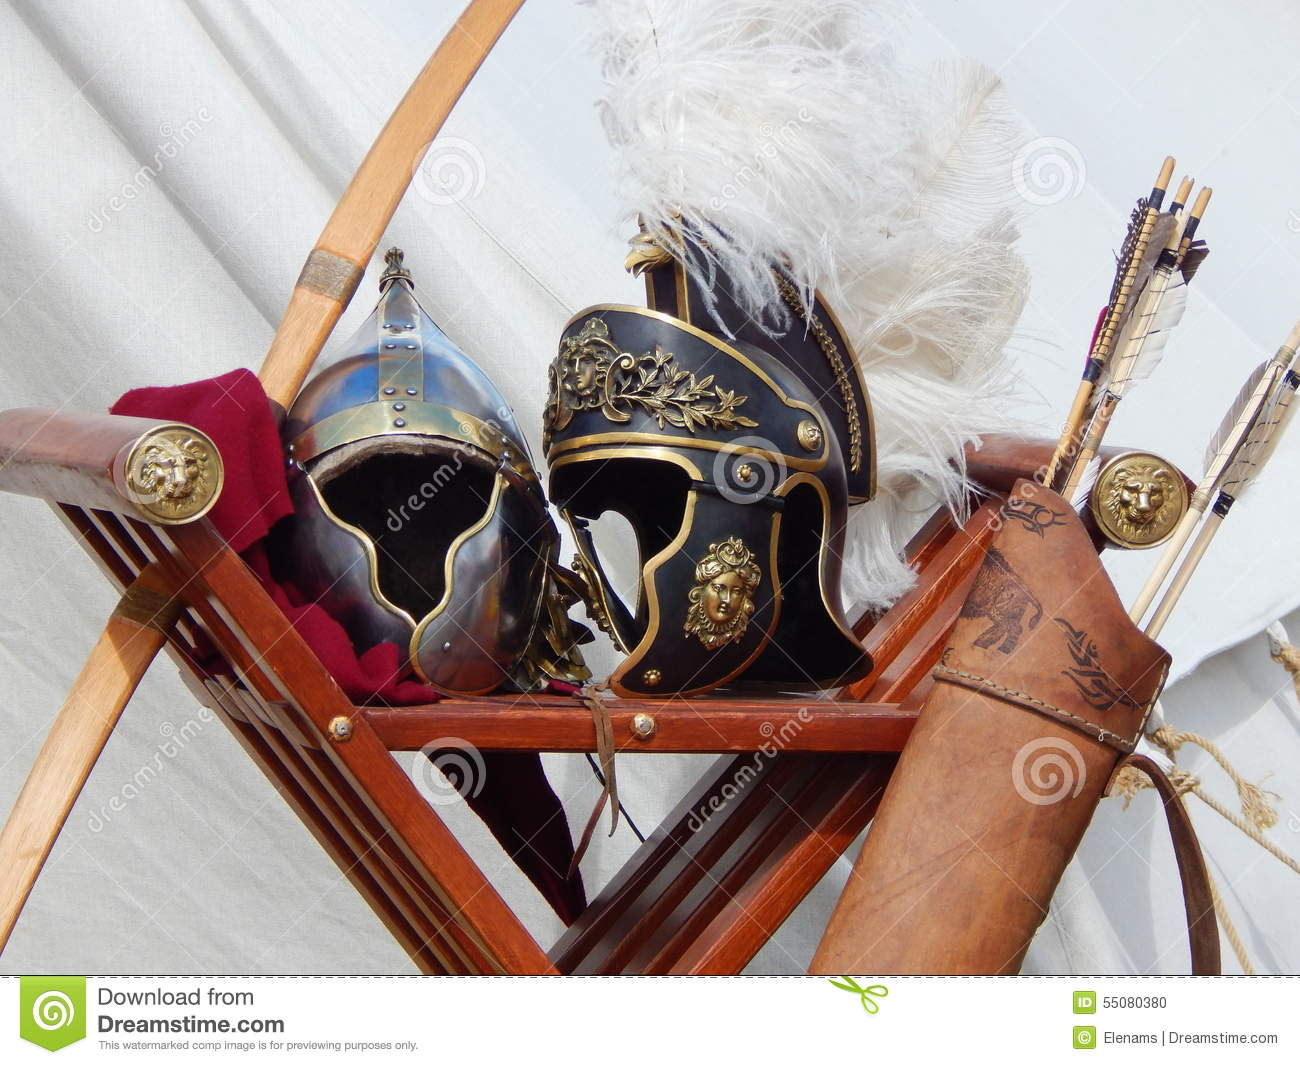 Roman helmets, bow and arrows at the international festival Times and epochs. Ancient Rome